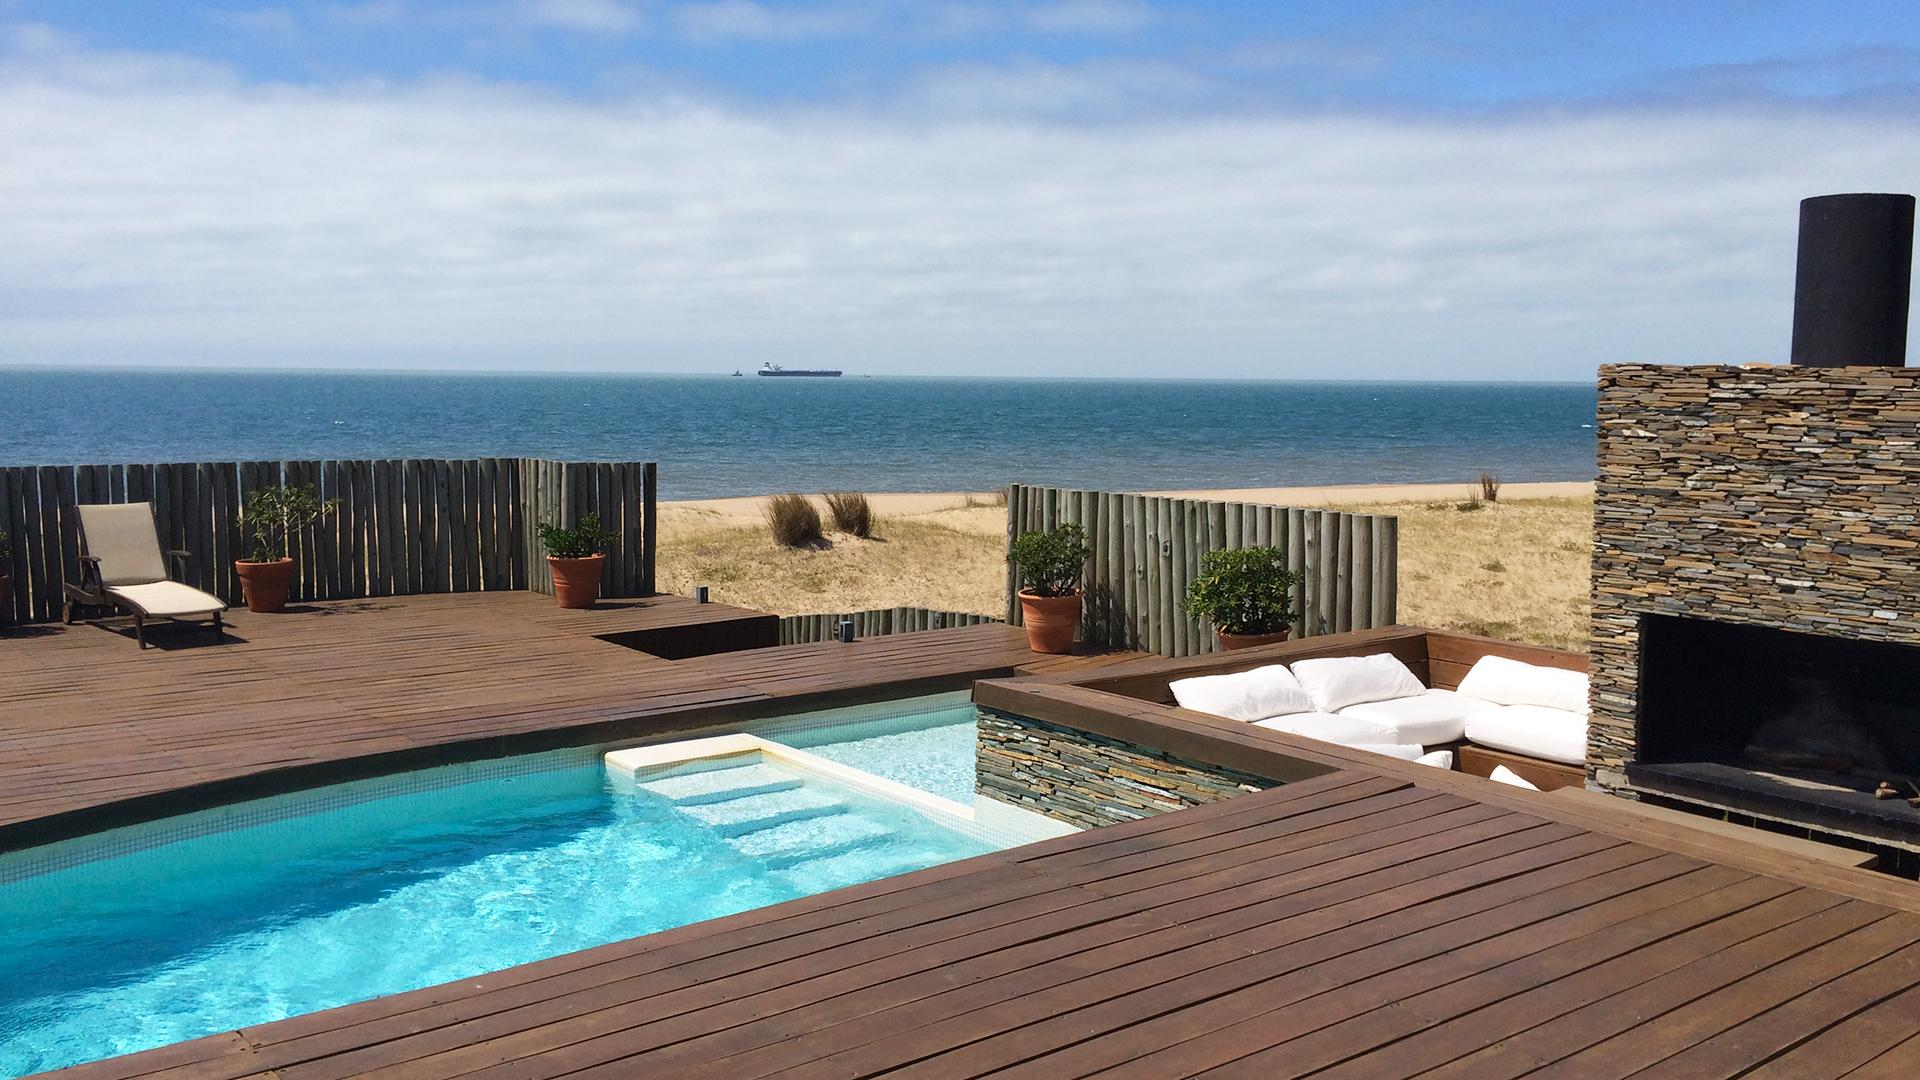 Superb Beachfront Villa located in Jose Ignacio, Punta del Este, Uruguay, listed by Curiocity Villas.